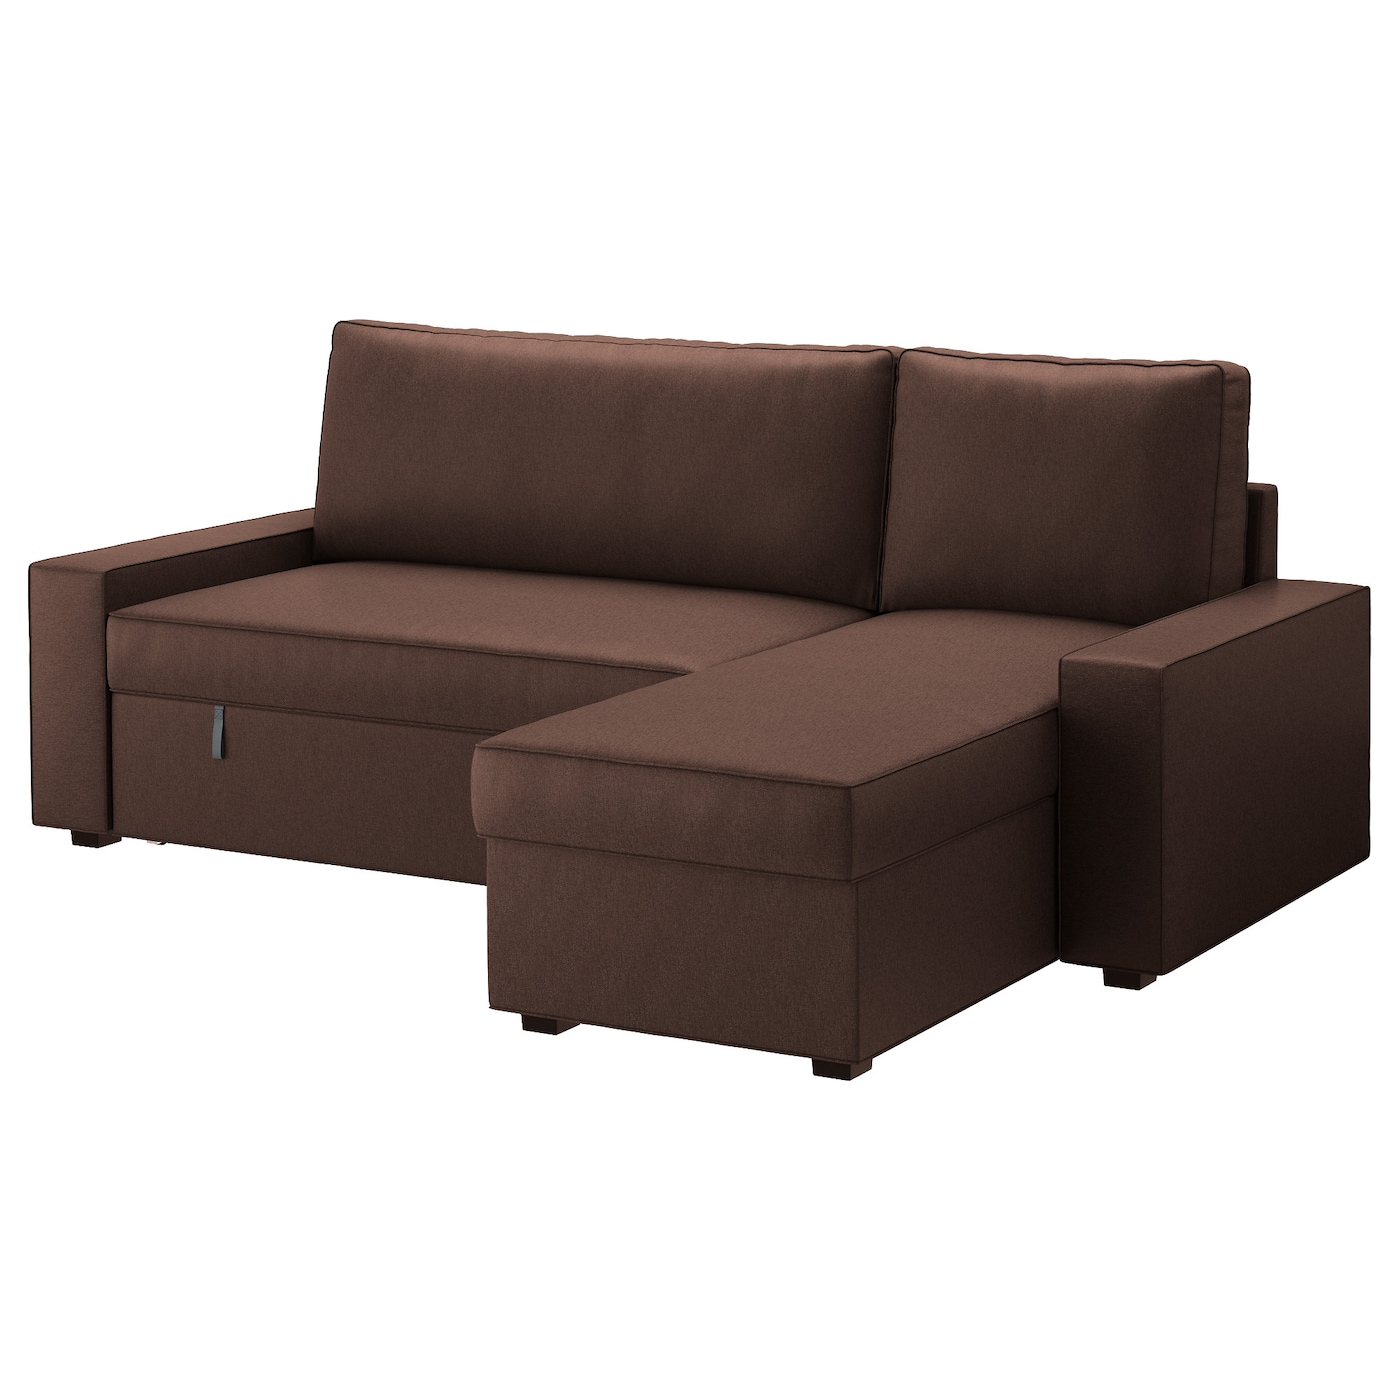 Vilasund sofa bed with chaise longue borred dark brown ikea for Oferta sofa cama chaise longue